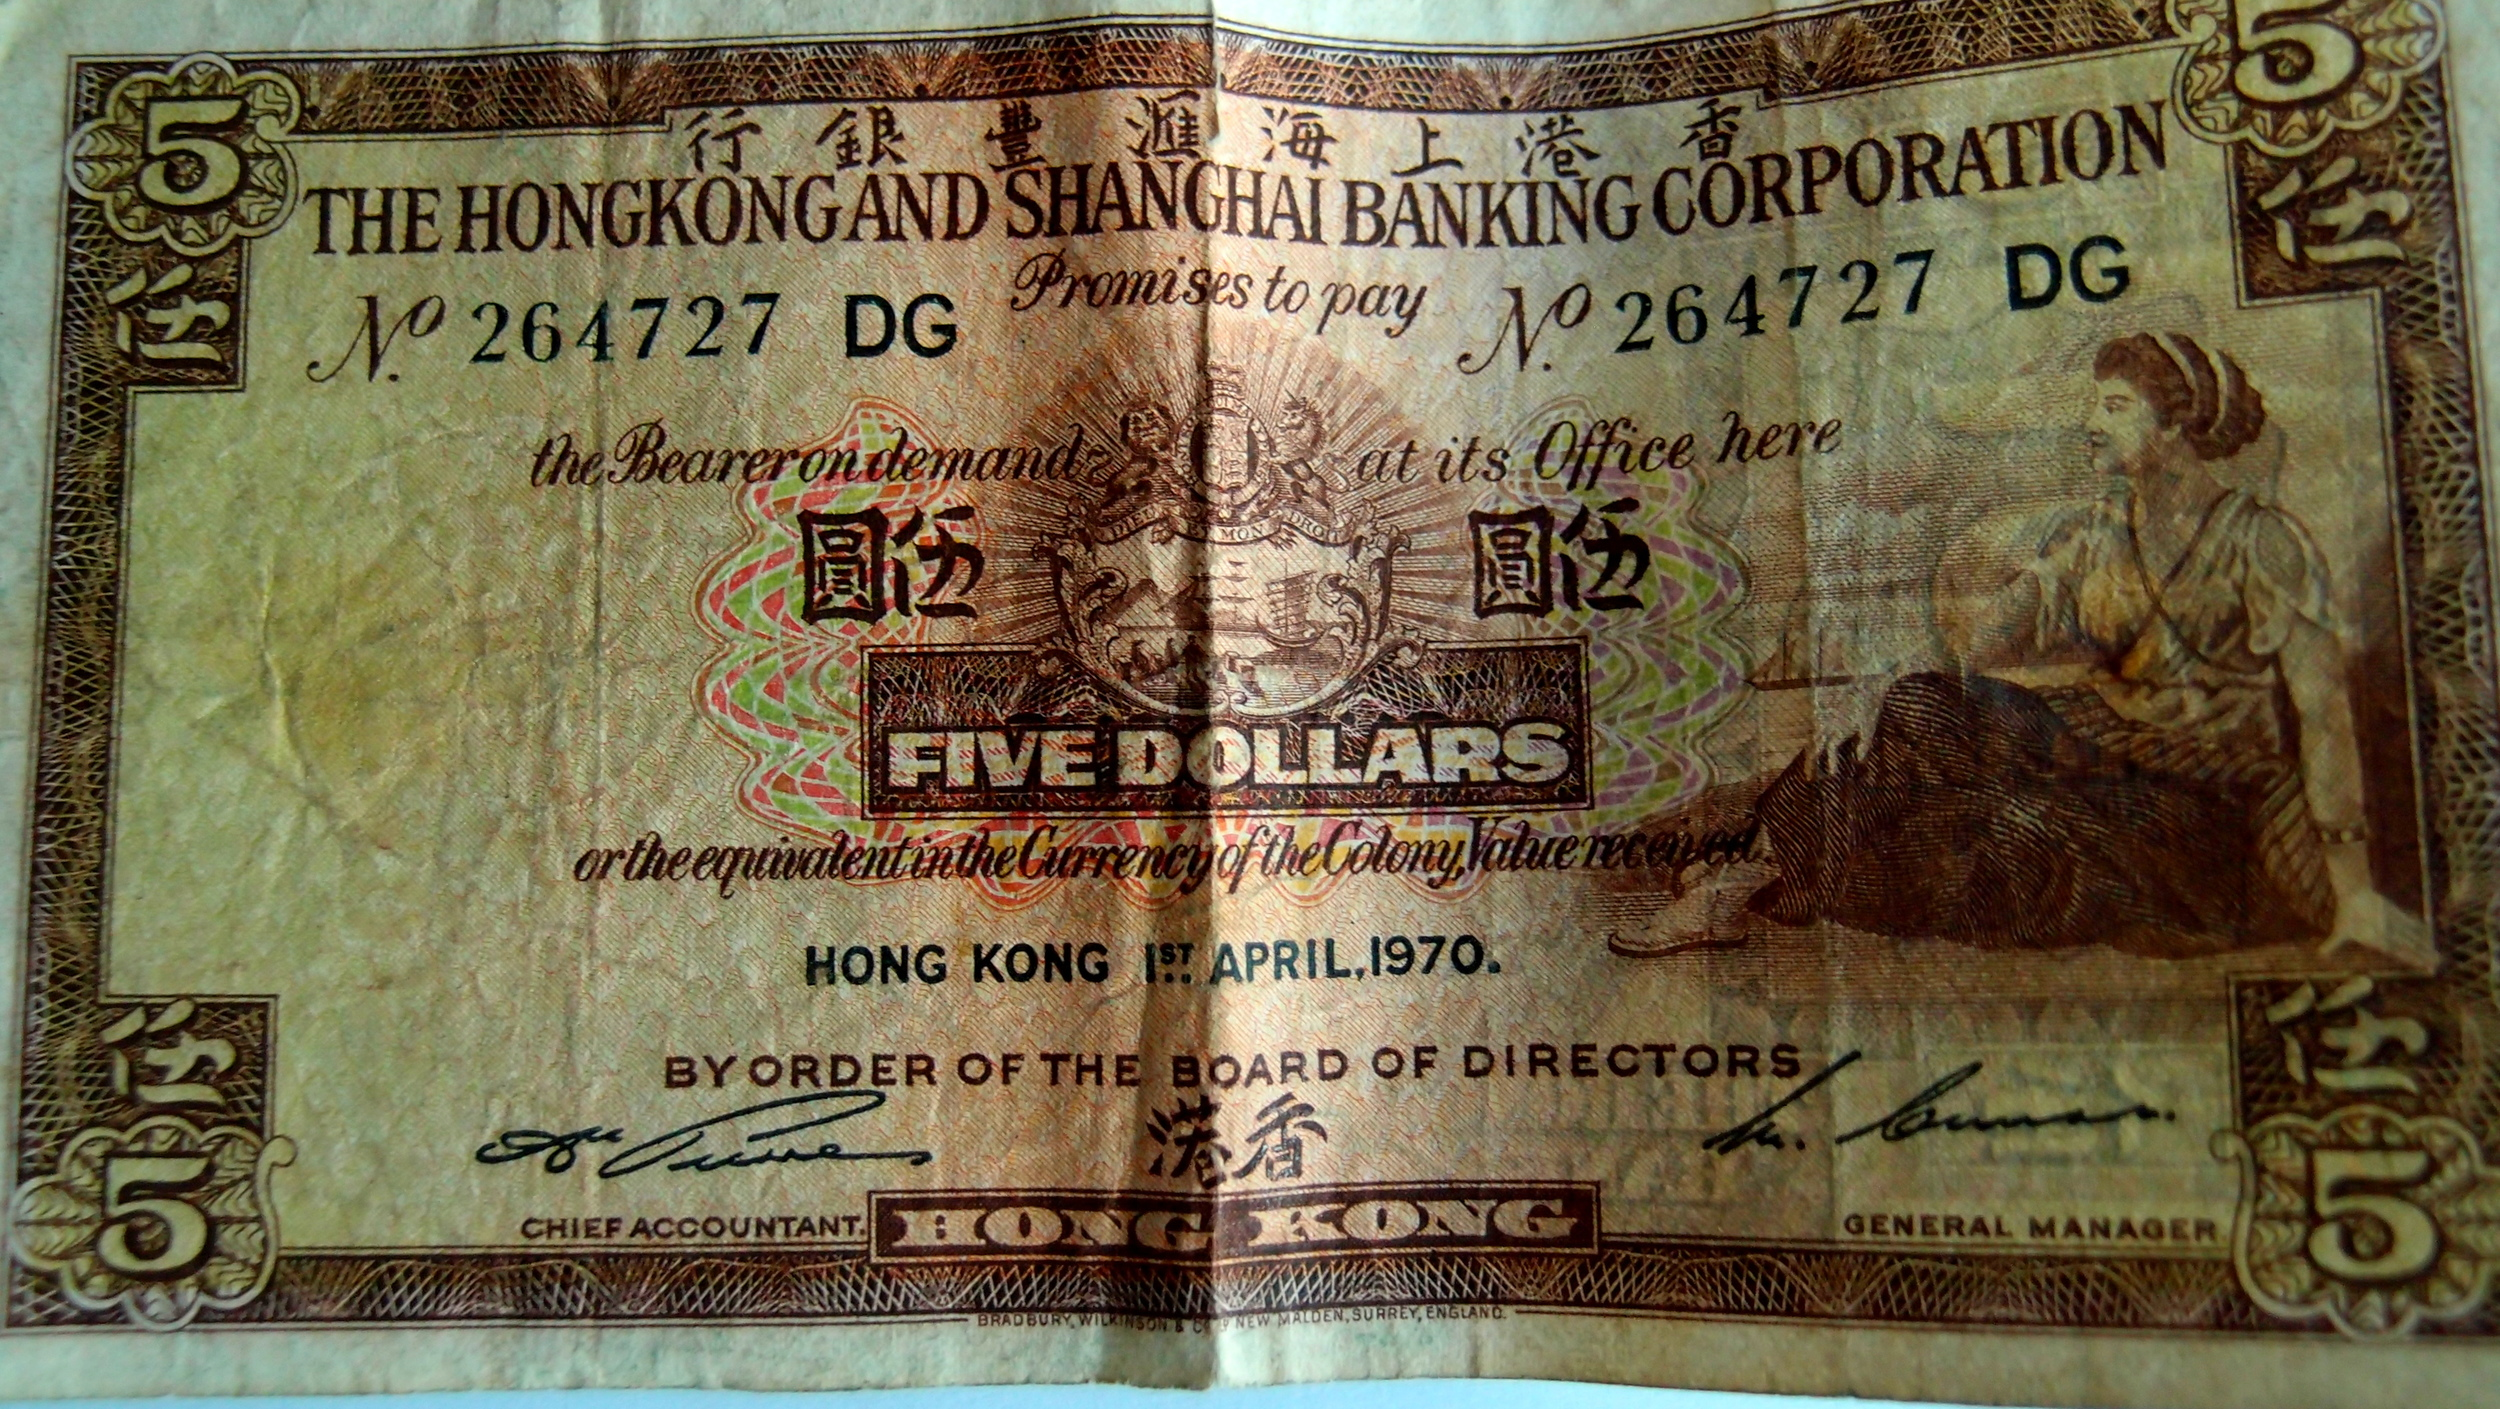 I imagine it is NOT a rare banknote but I have not seen one since the 1970's.